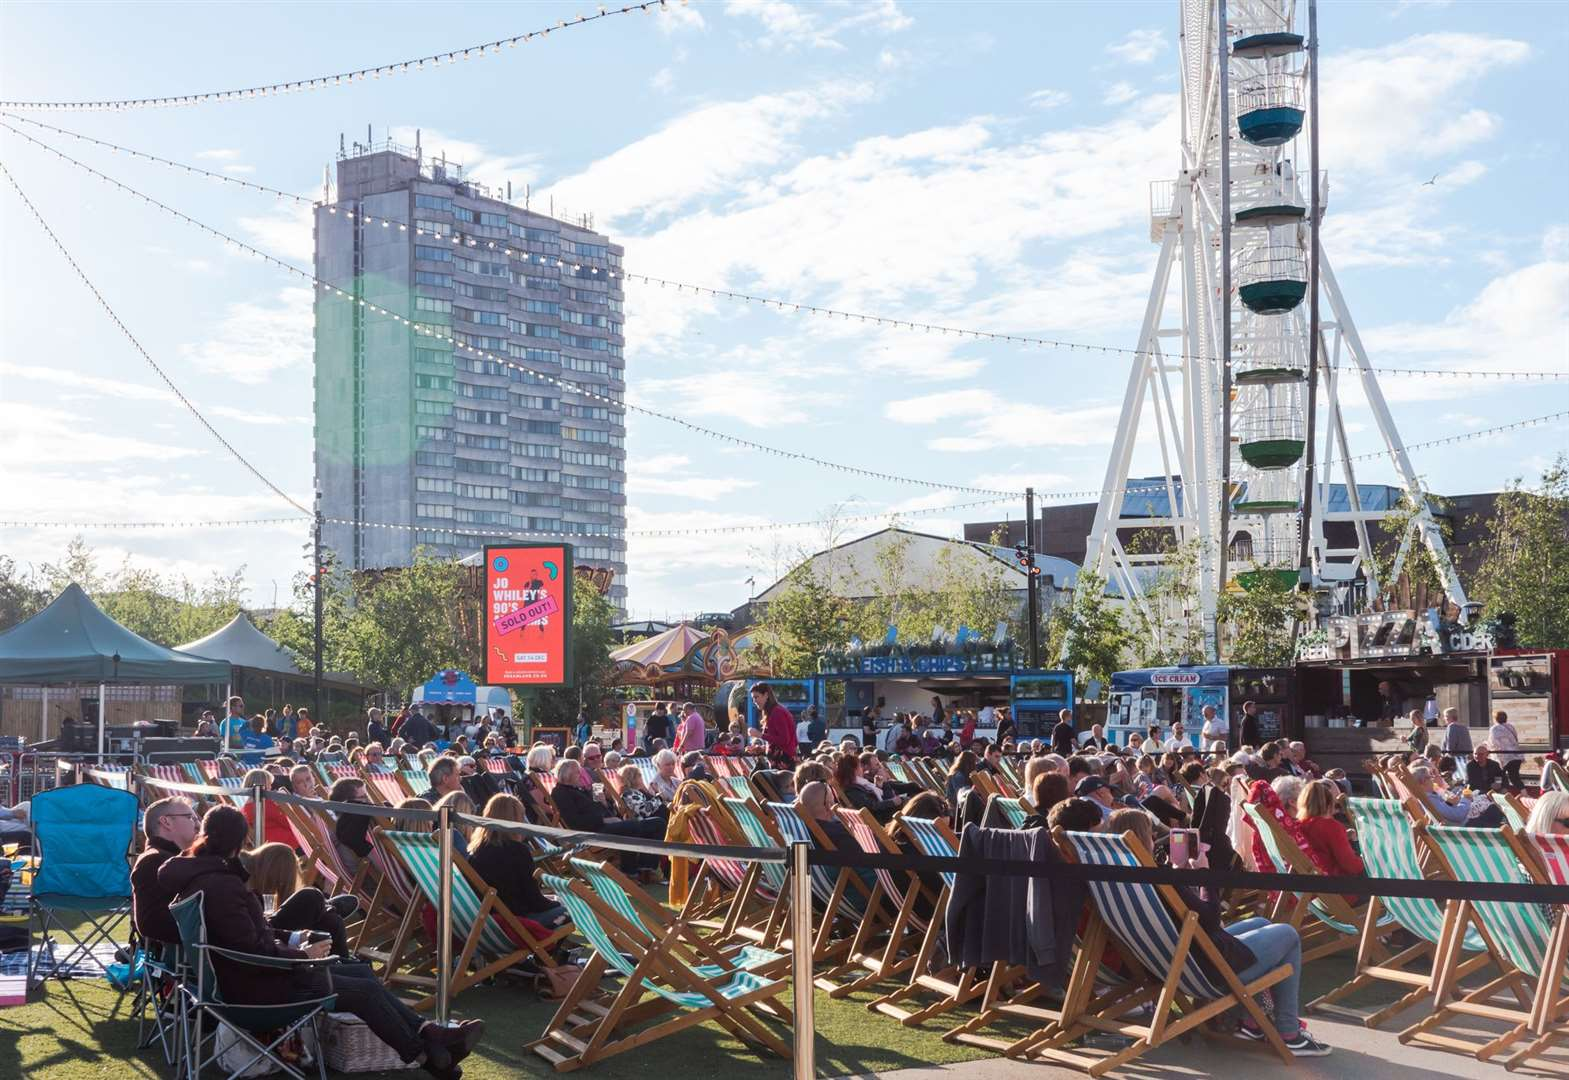 Open air cinema coming to Dreamland